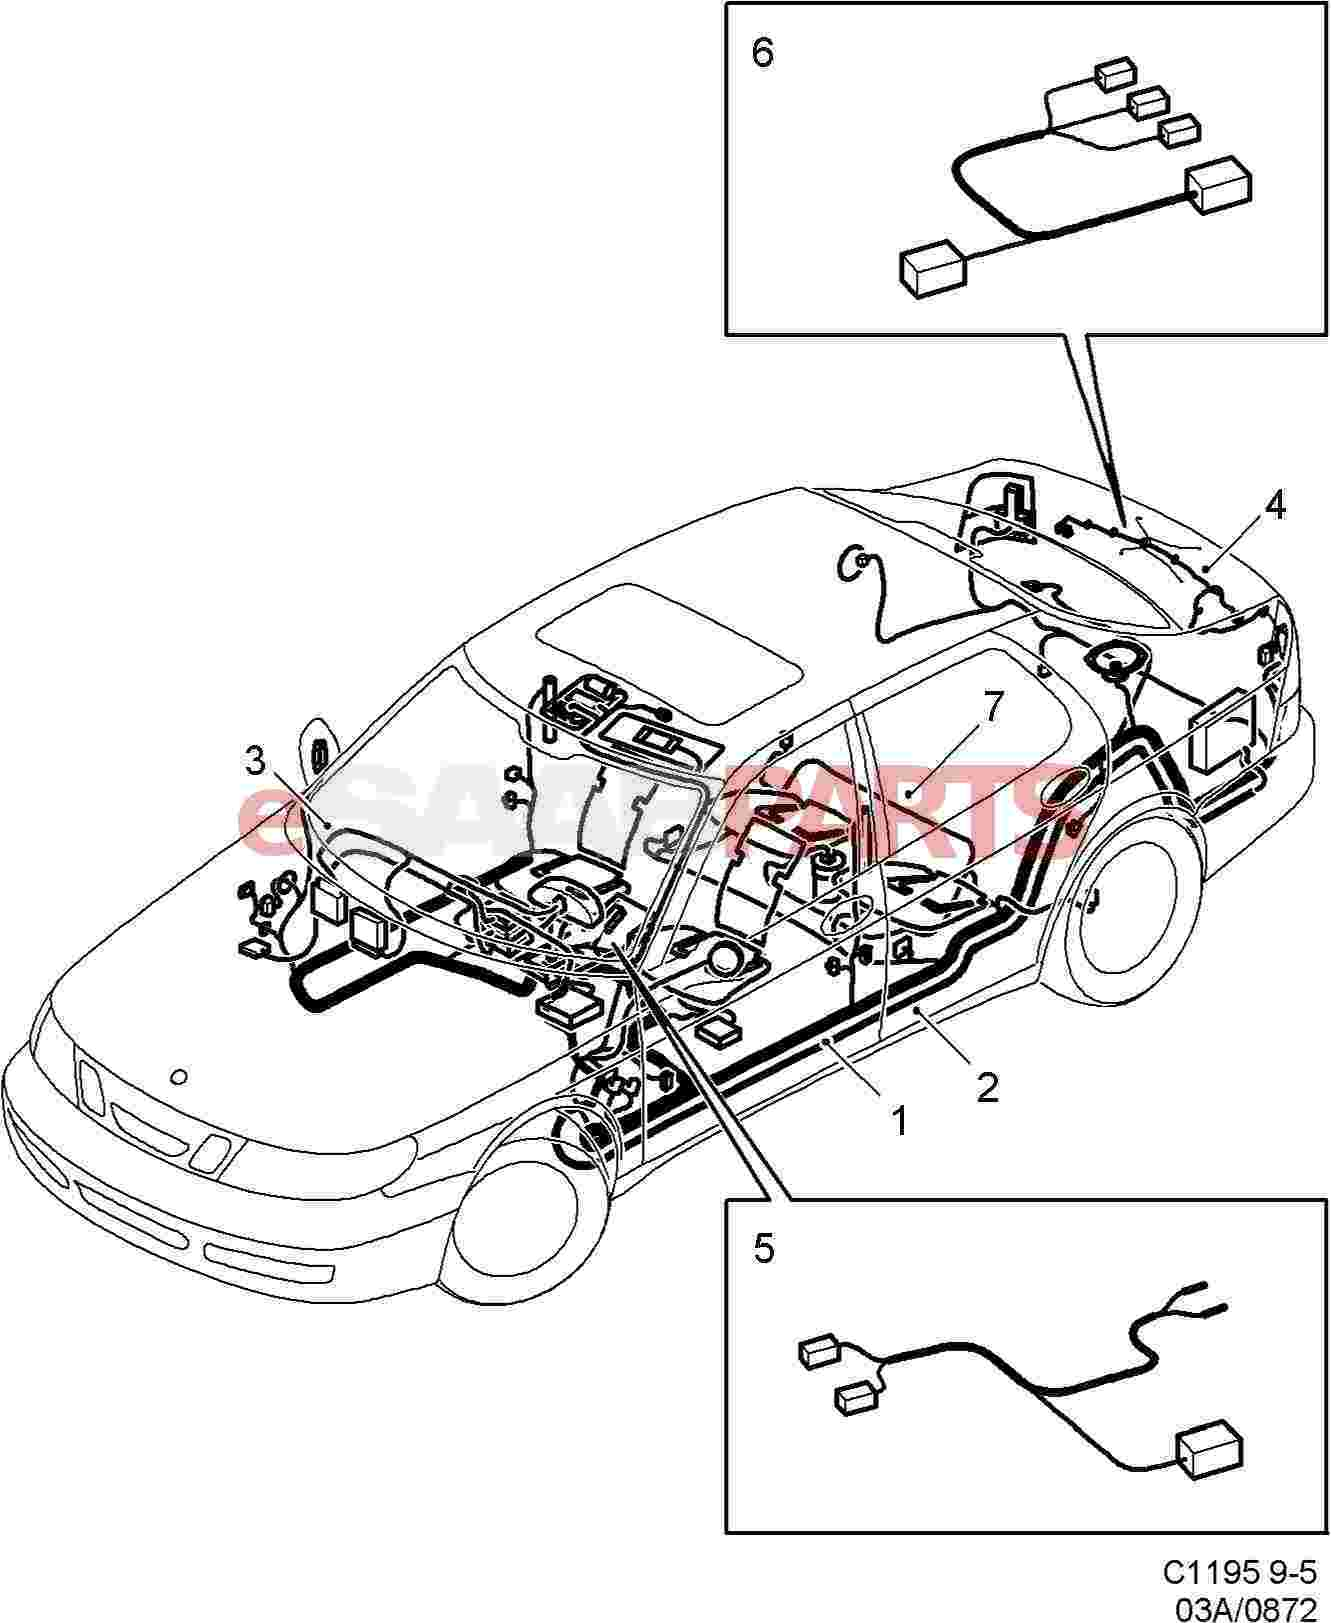 eSaabParts.com - Saab 9-5 (9600) > Electrical Parts > Wiring Harness on wire leads, wire clothing, wire antenna, wire nut, wire sleeve, wire holder, wire connector, wire ball, wire cap, wire lamp,